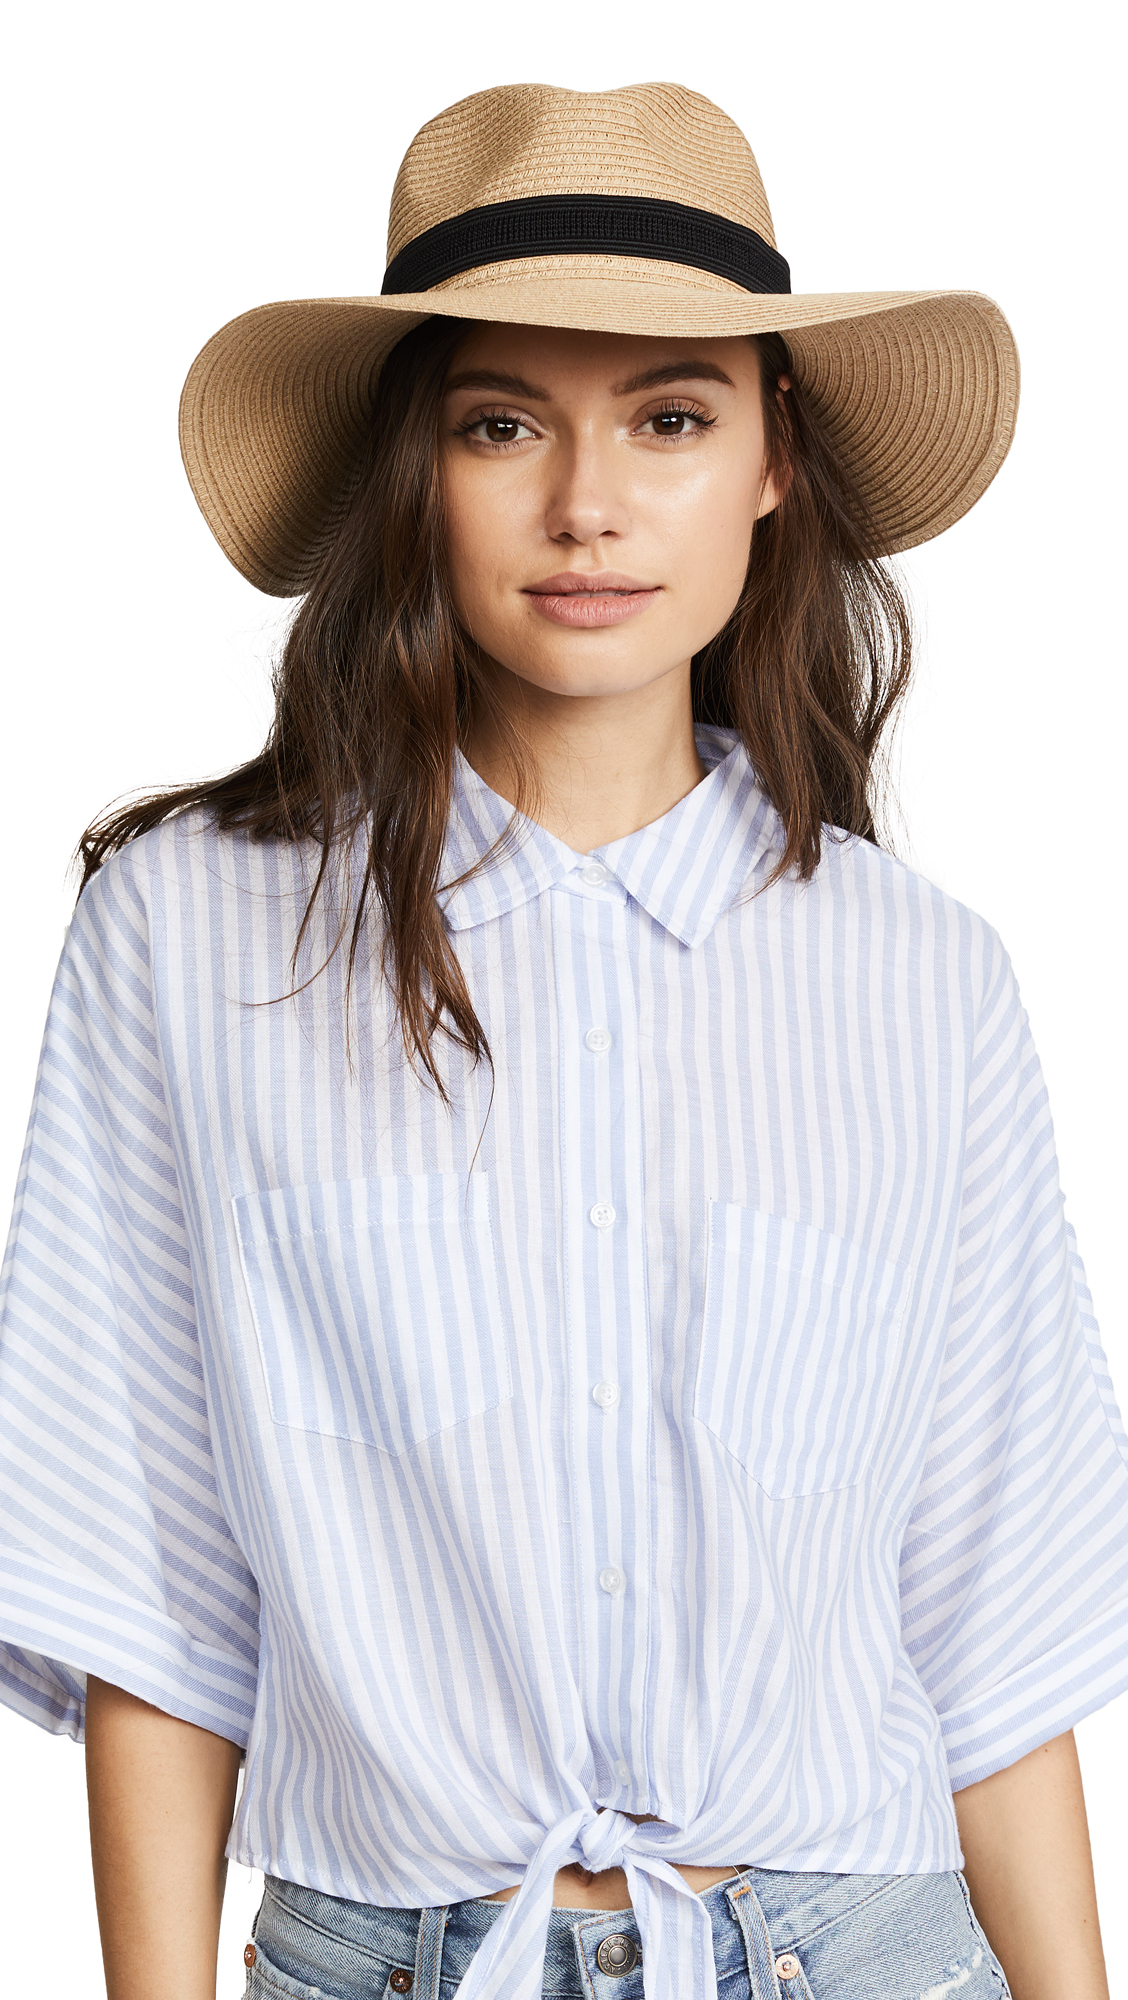 5e9e2d4be0f45 Madewell Packable Mesa Straw Hat In Natural Straw